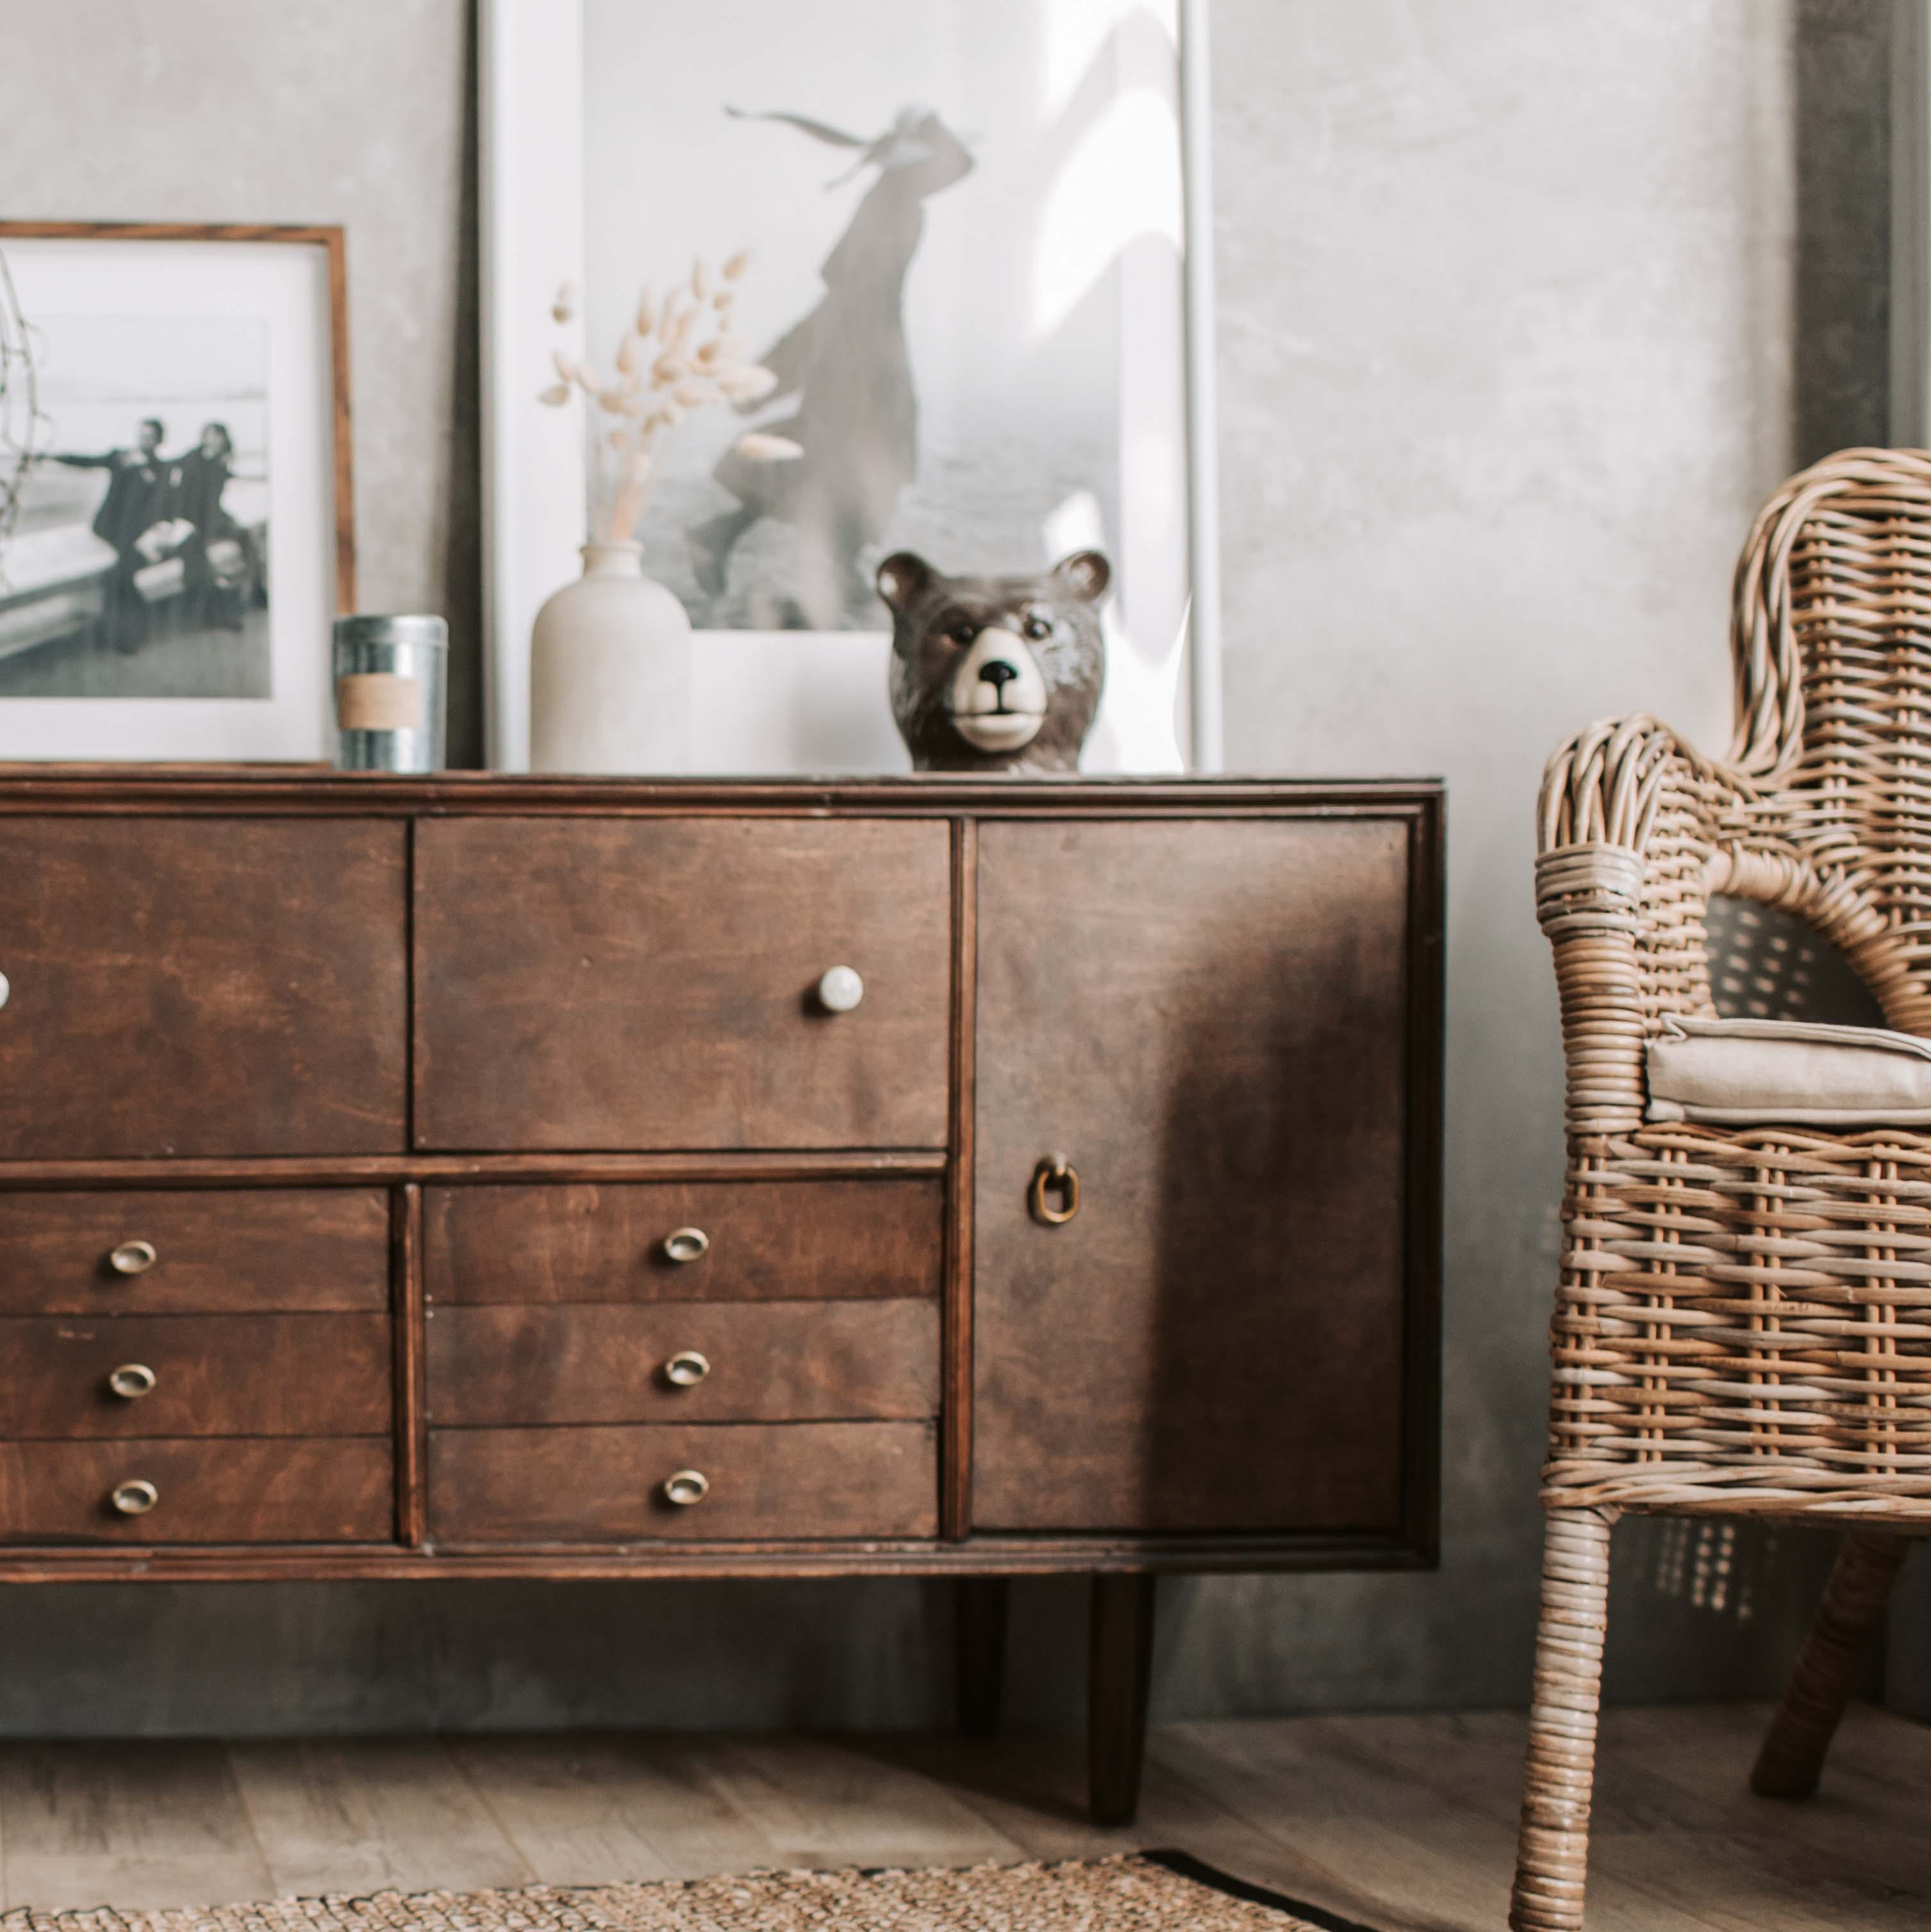 Furniture,Chest of drawers,Drawer,Sideboard,Room,Table,Chest,Interior design,Wood,Nightstand